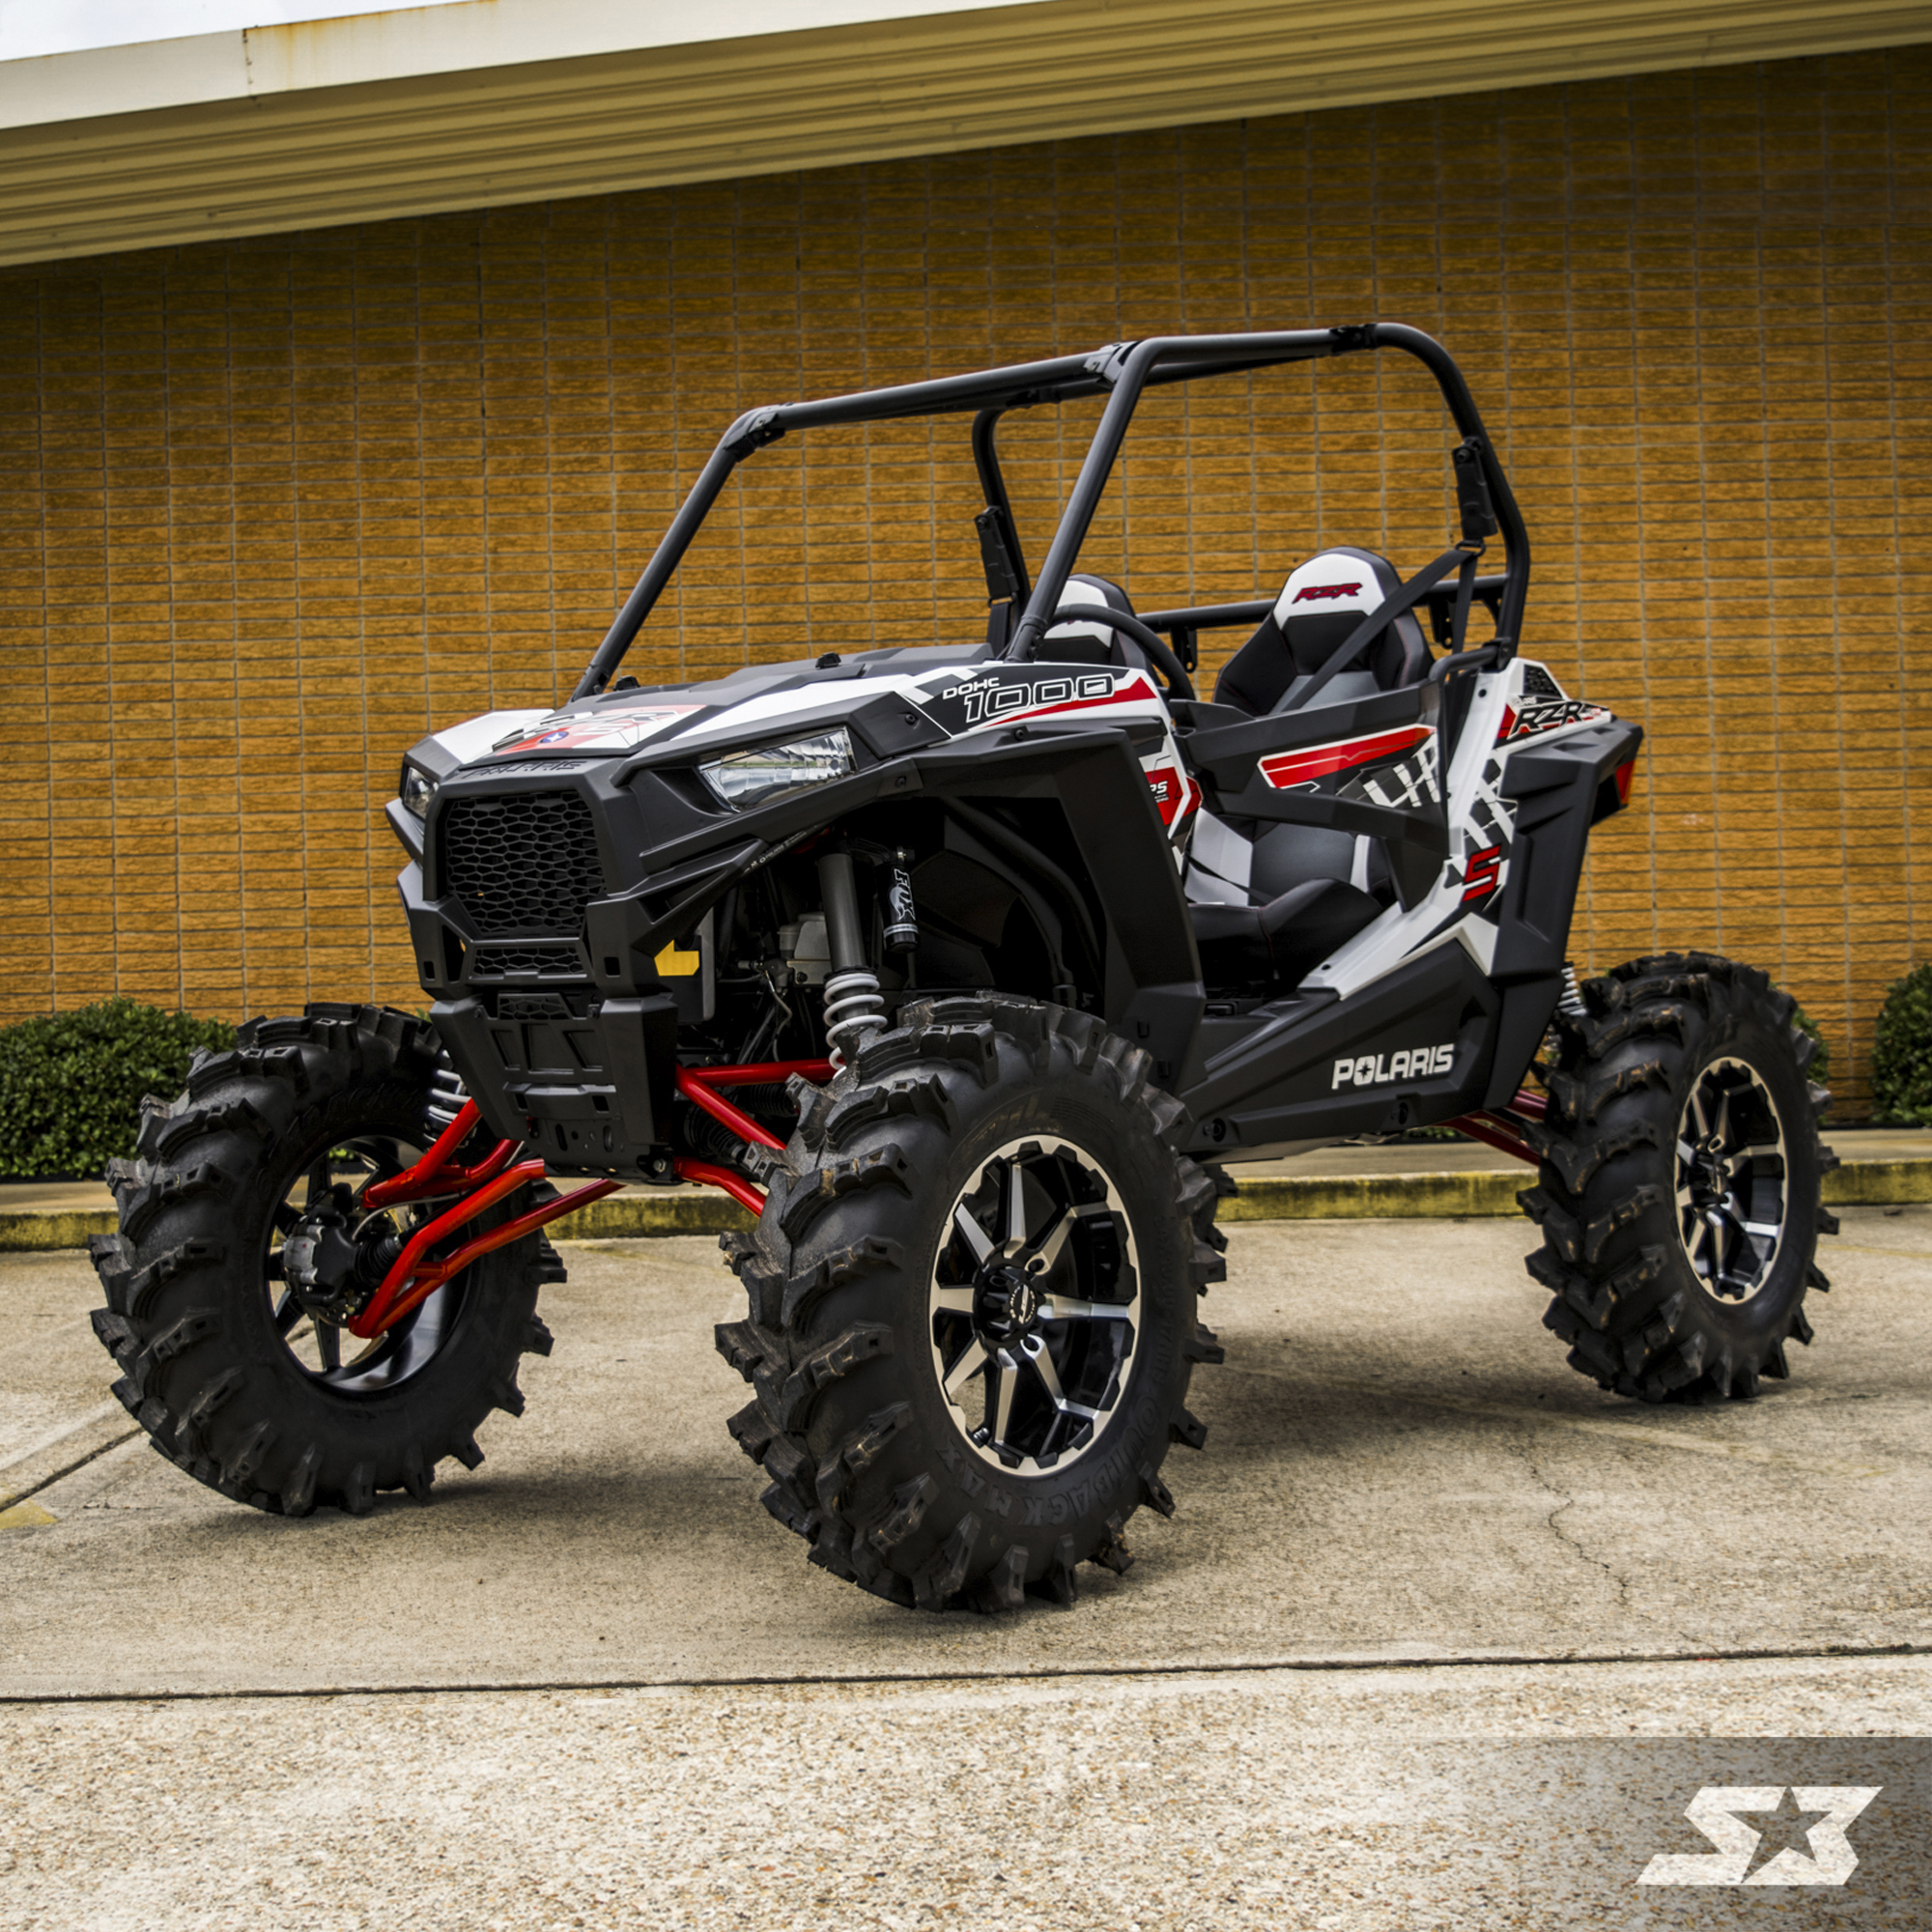 build 2016 polaris rzr s 1000 s3 power sports polaris rzr forum rzr. Black Bedroom Furniture Sets. Home Design Ideas